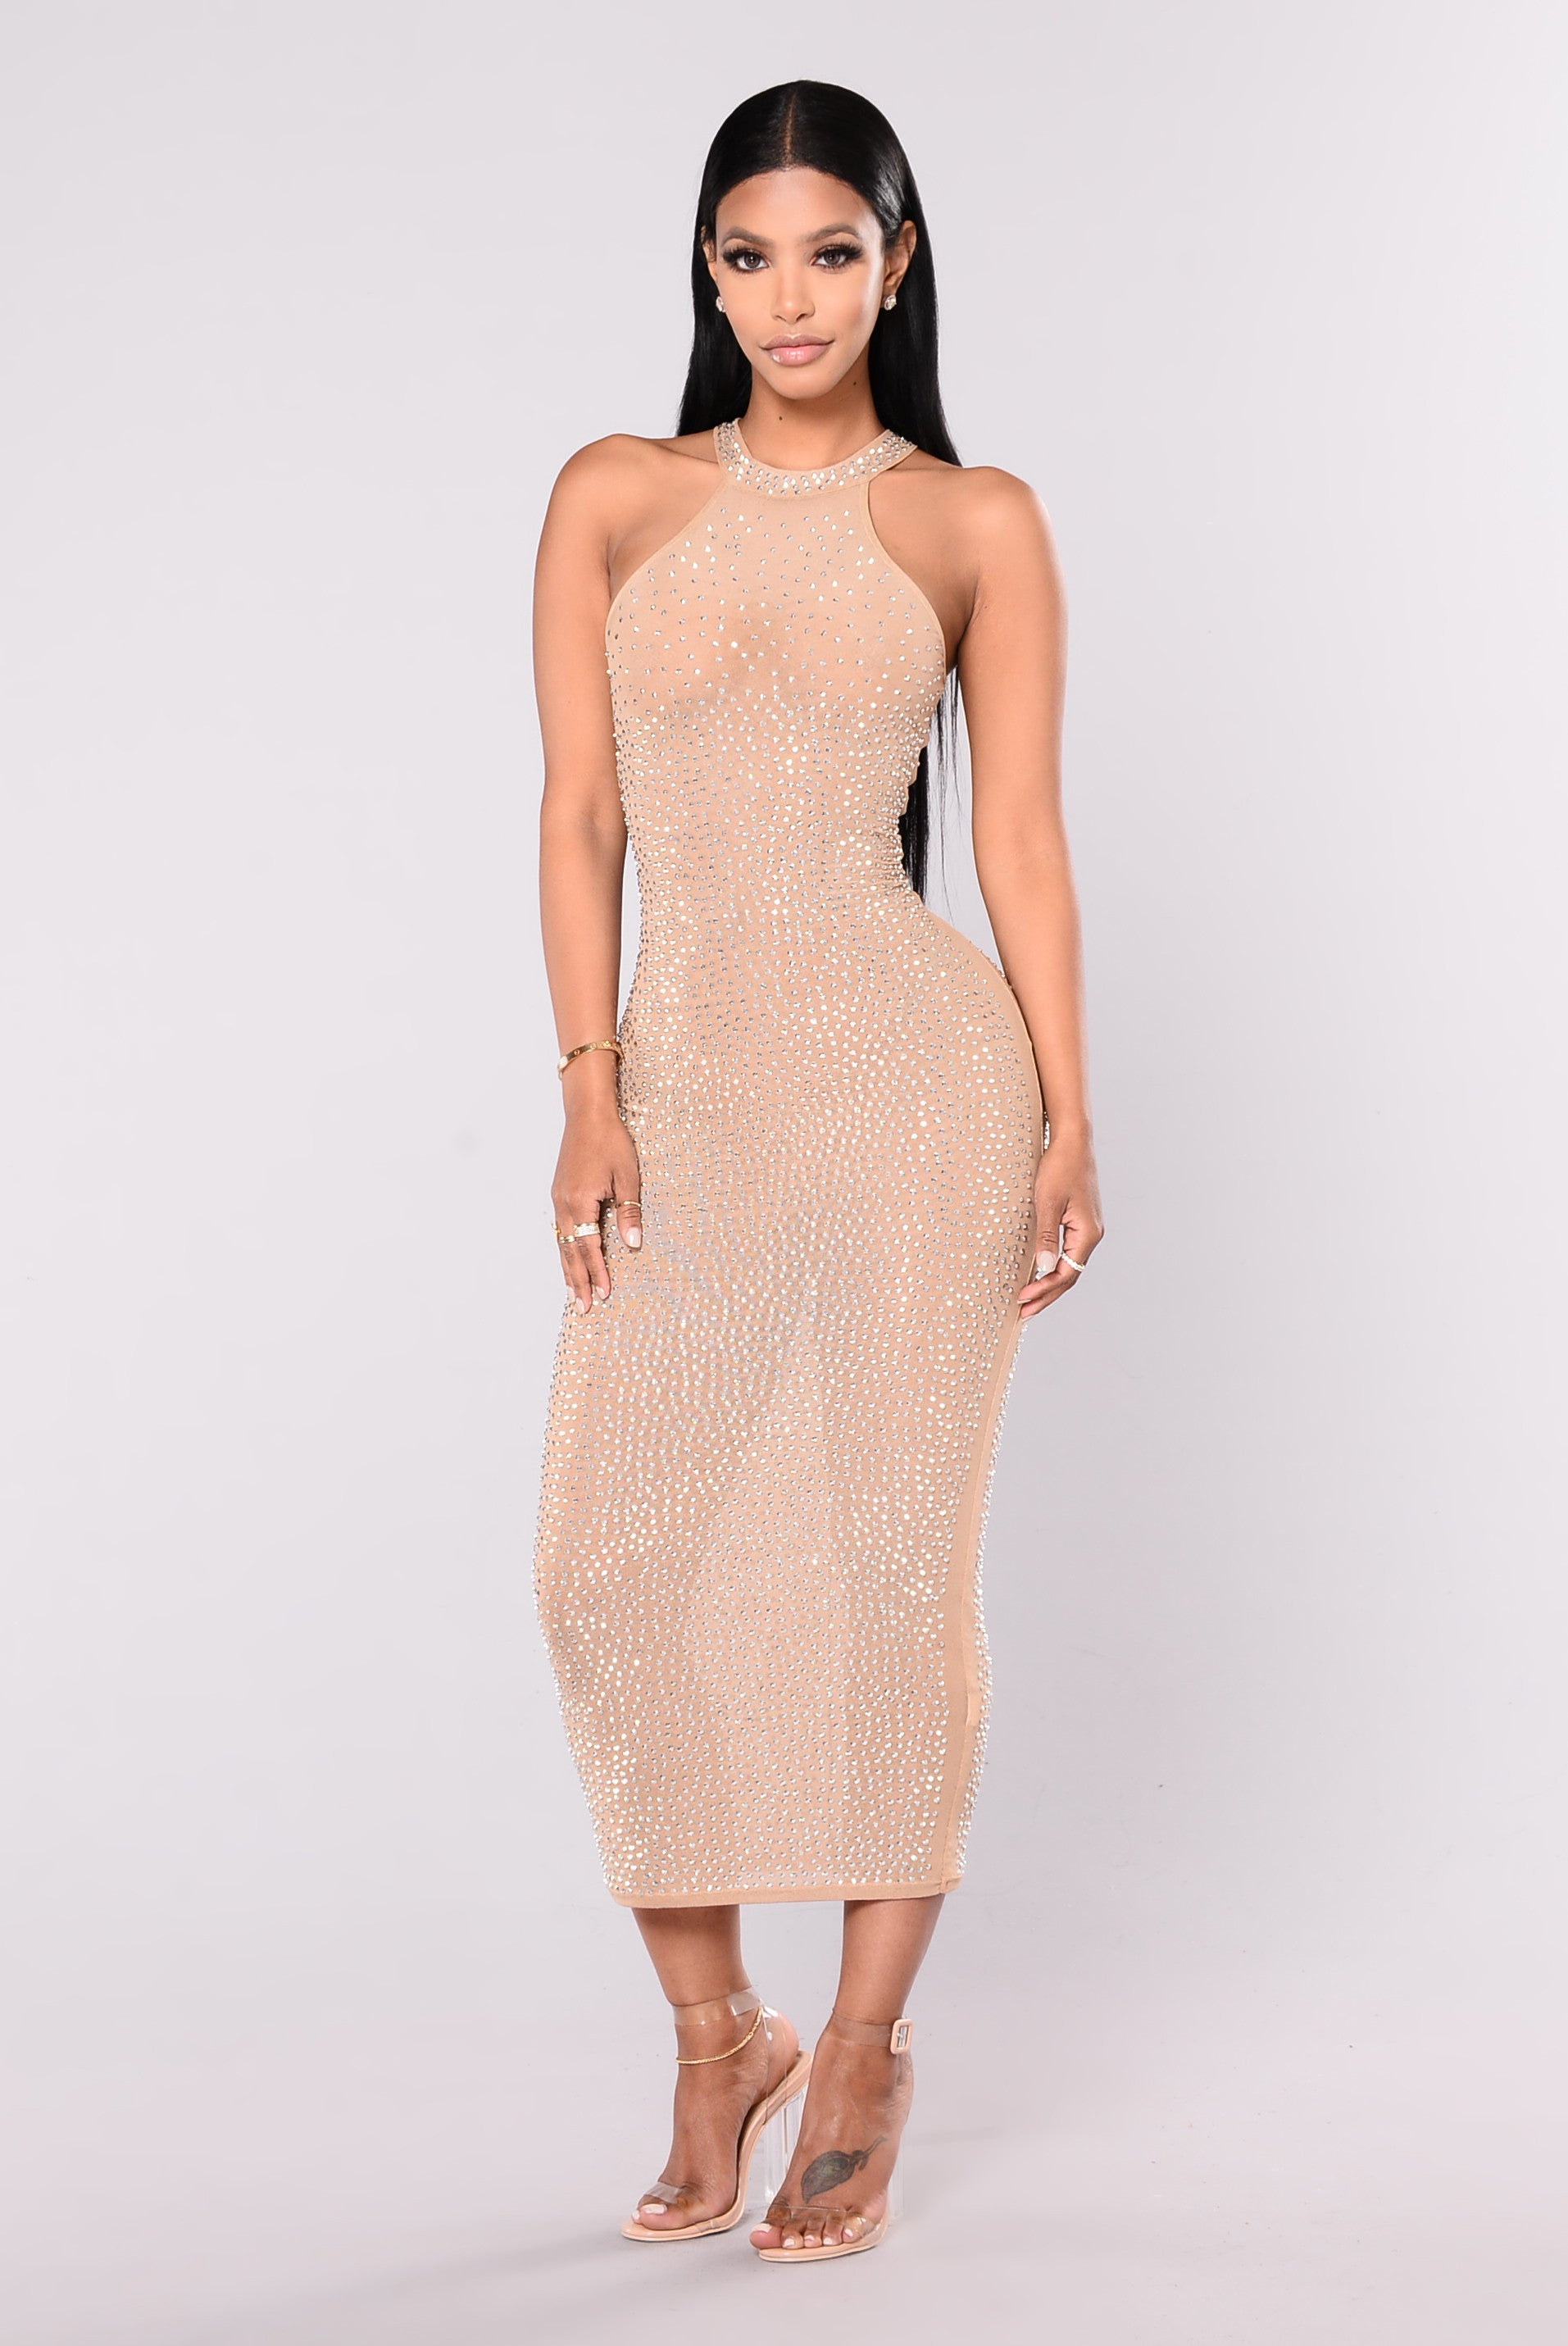 nude fashion Glo Up Rhinestone Dress - Nude